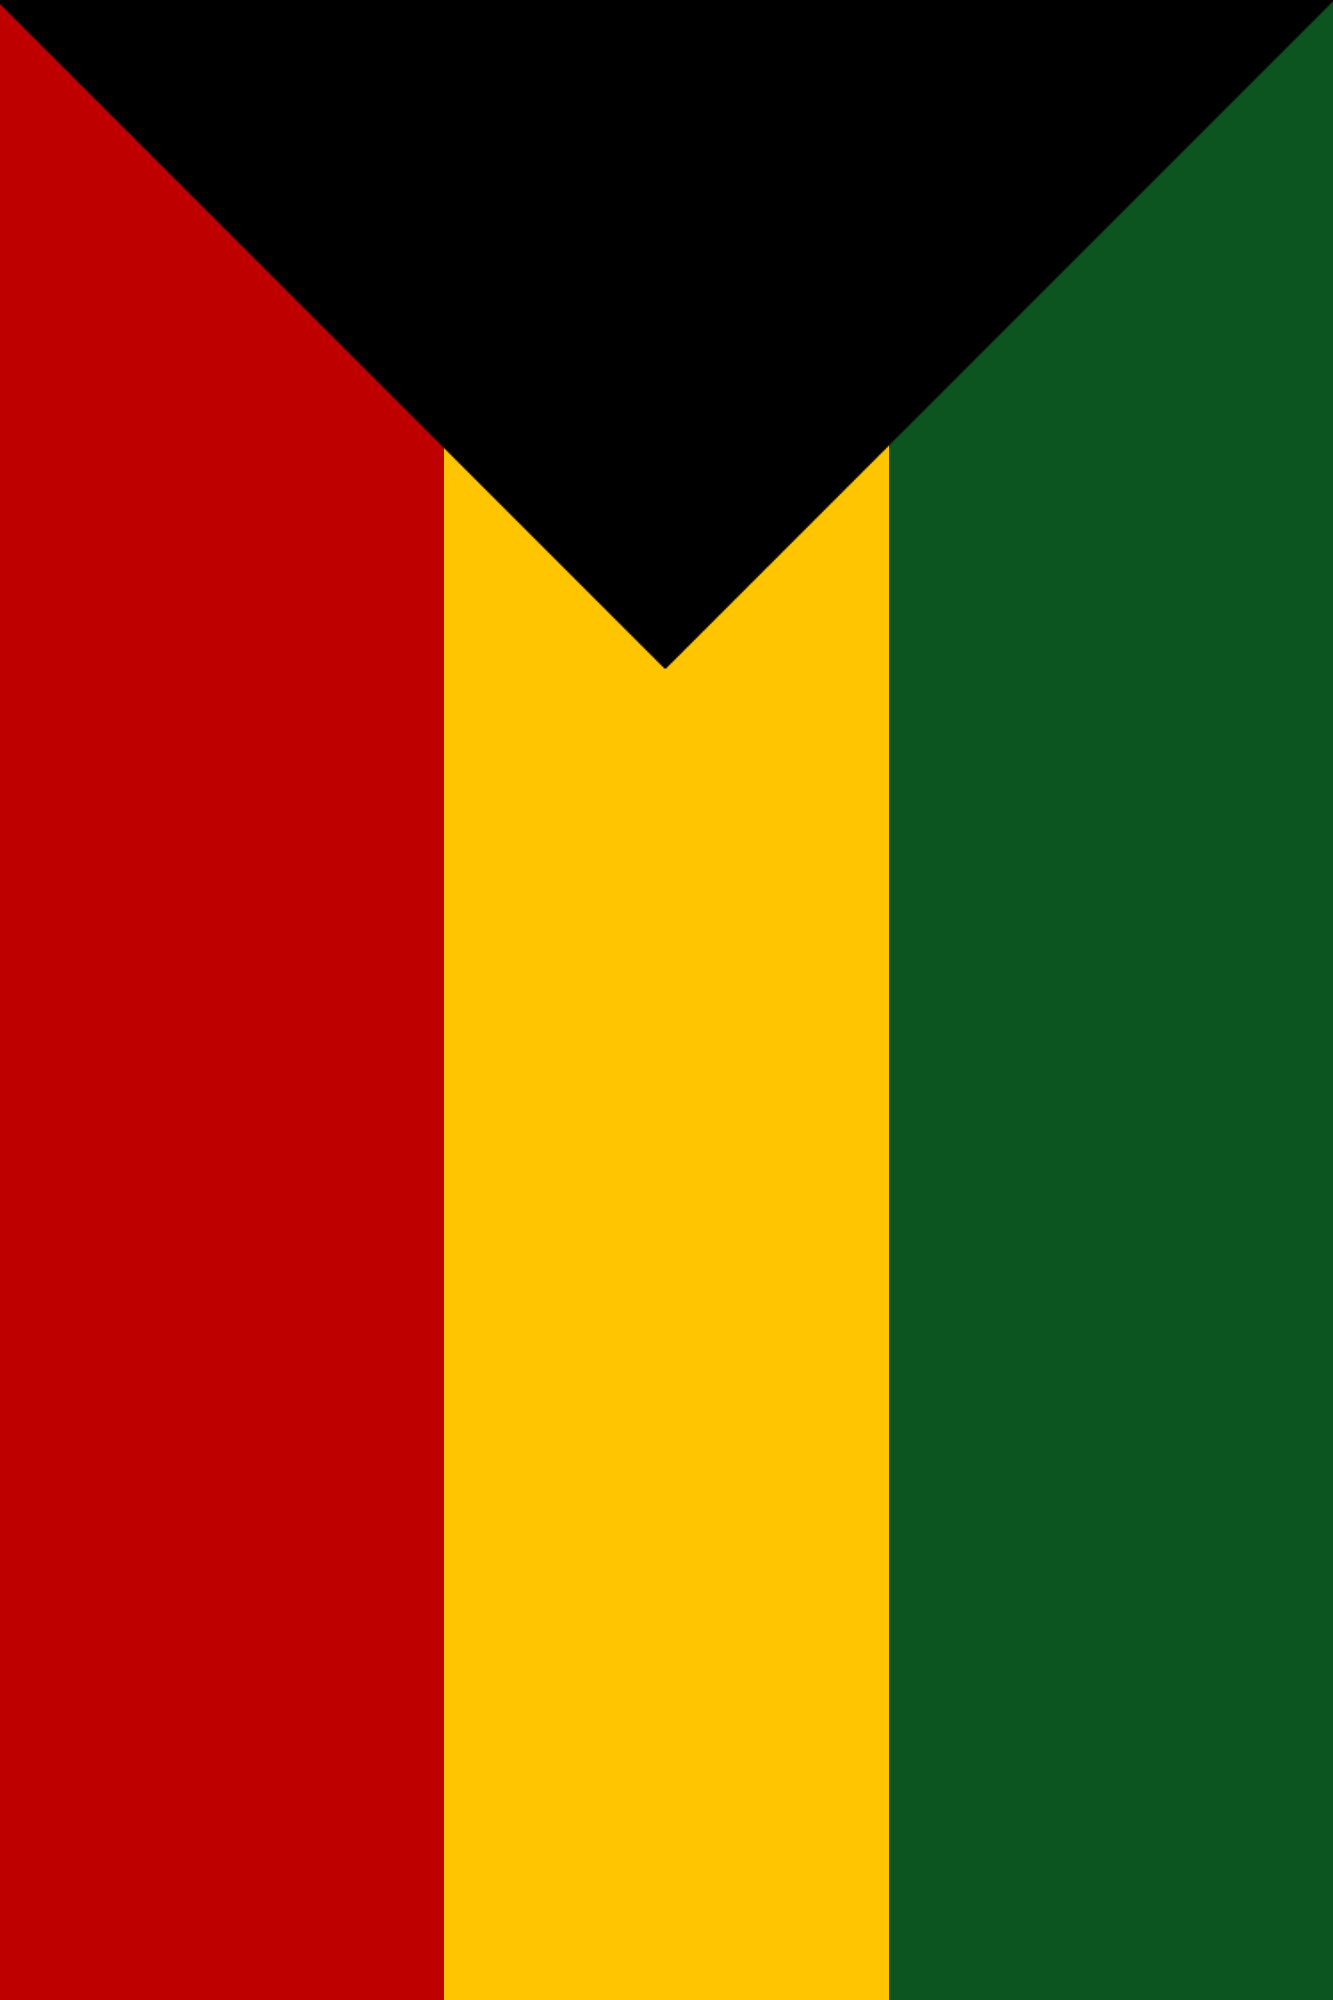 File:Vertical pan african flag.png - Wikimedia Commons